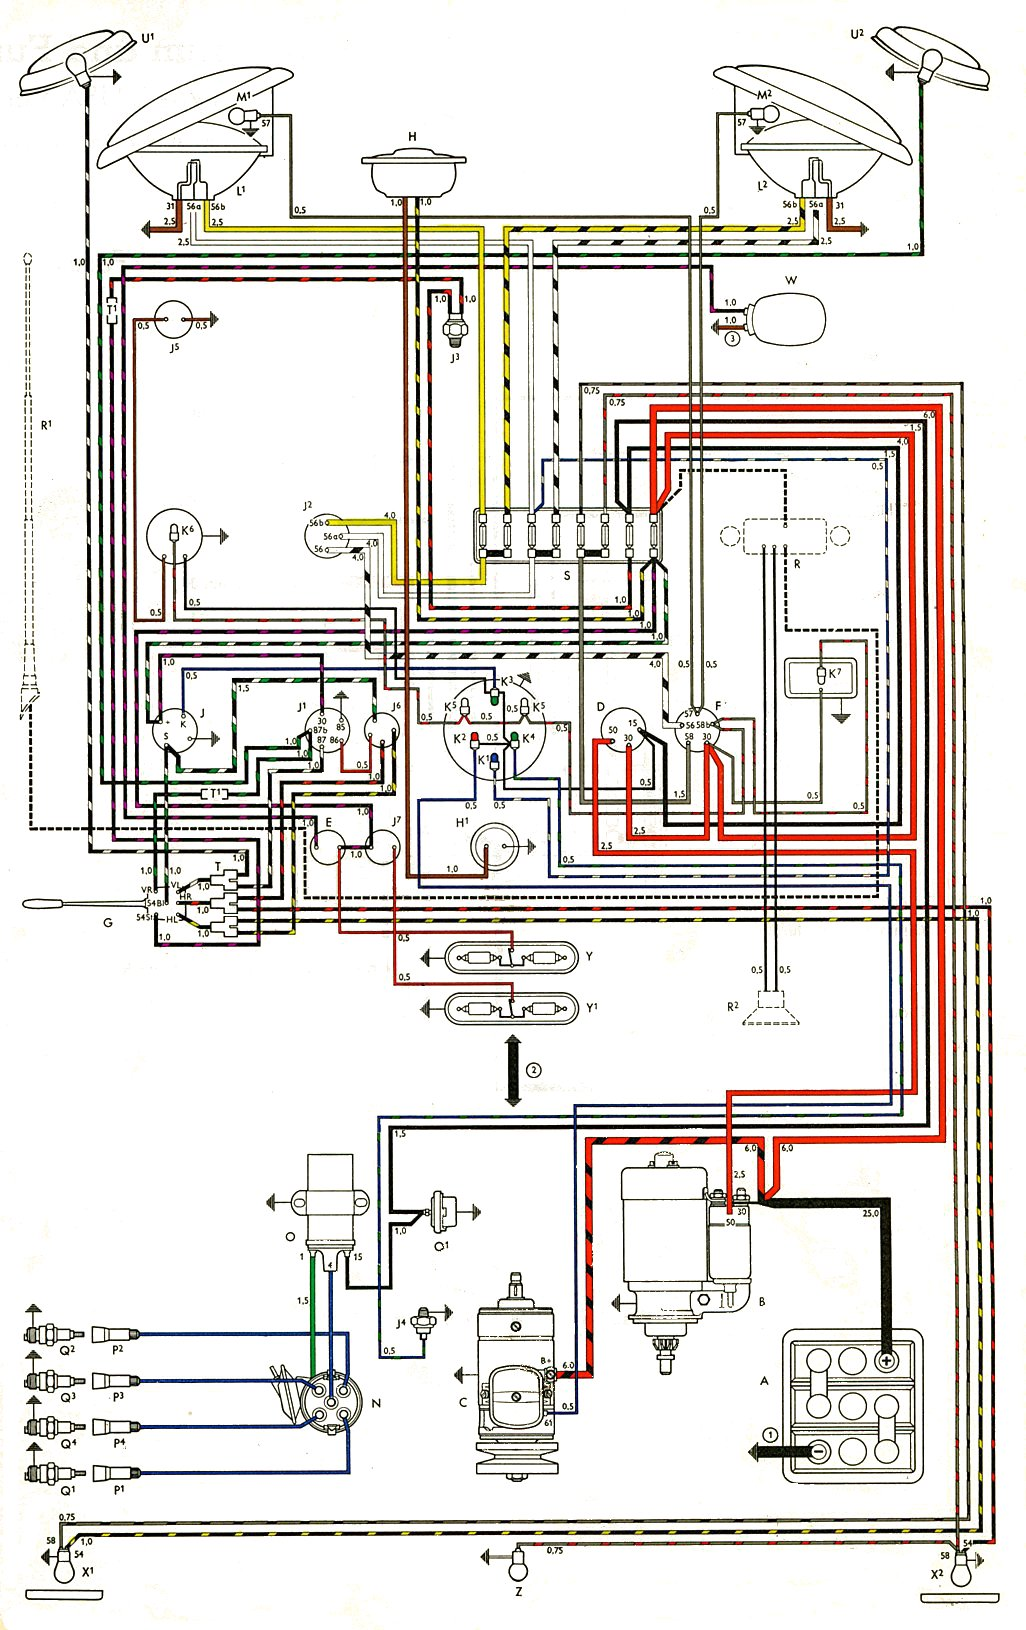 bus_63_USA thesamba com type 2 wiring diagrams vw wiring diagrams at gsmx.co